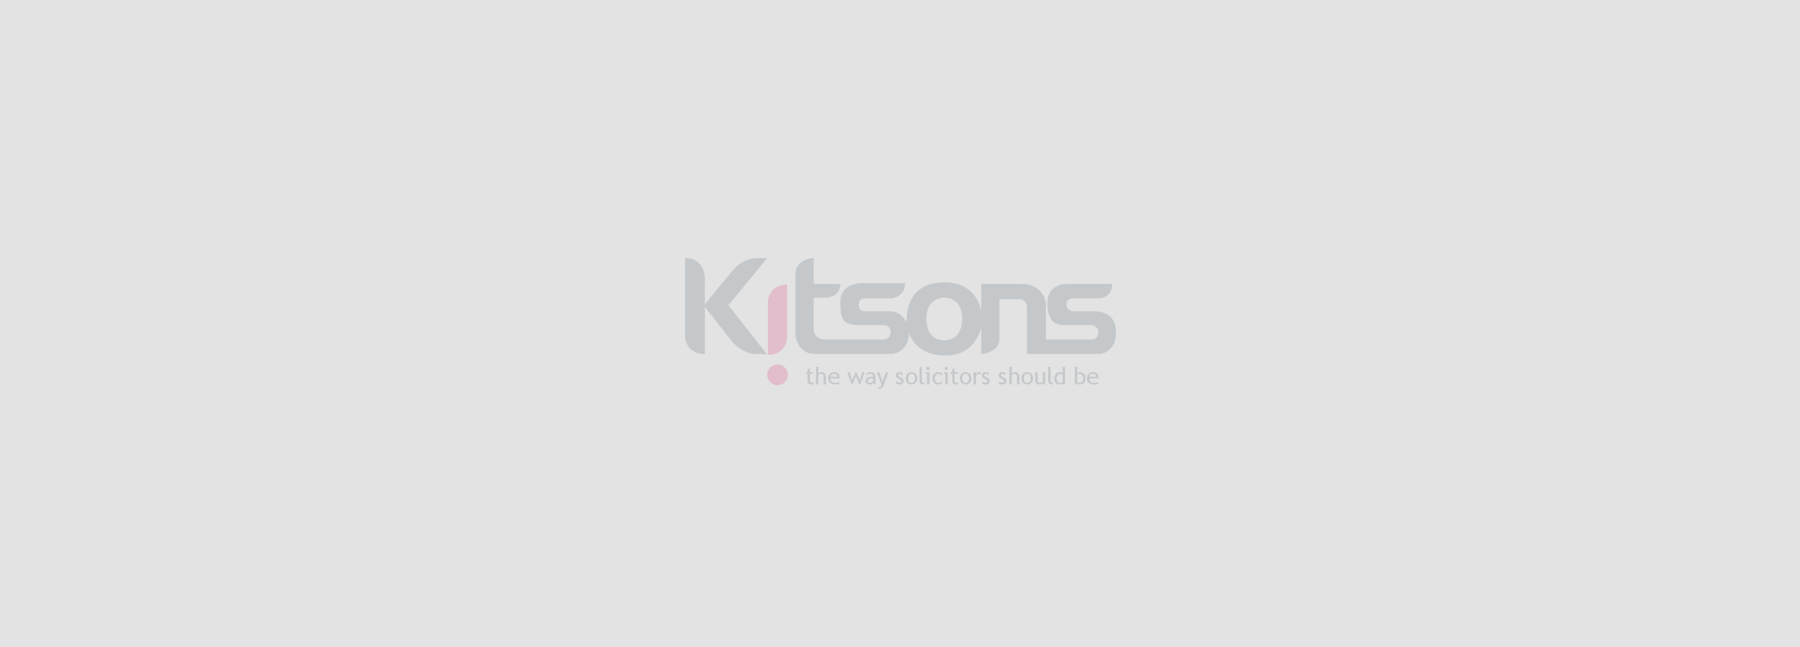 Kitsons Solicitors - Suspension of wrongful trading provisions and other changes to insolvency rules